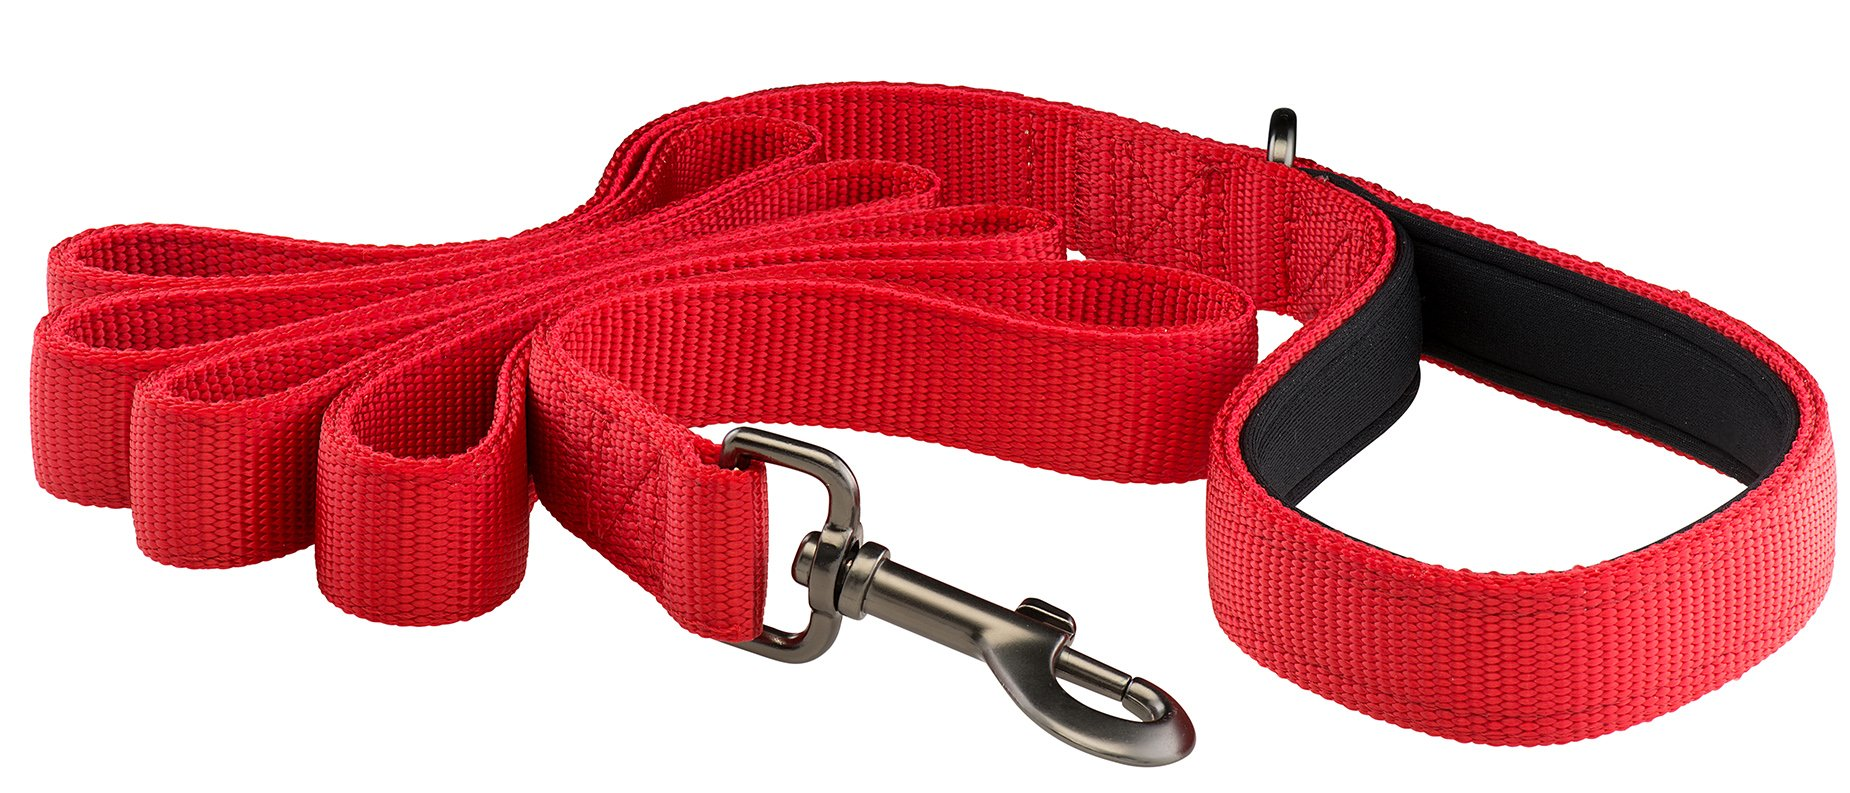 Woofiy Original By Premium Dog Leash - Heavy Duty Strap, Padded Handle, Ambient Colors - 6 Feet Long, 1 Inch Wide